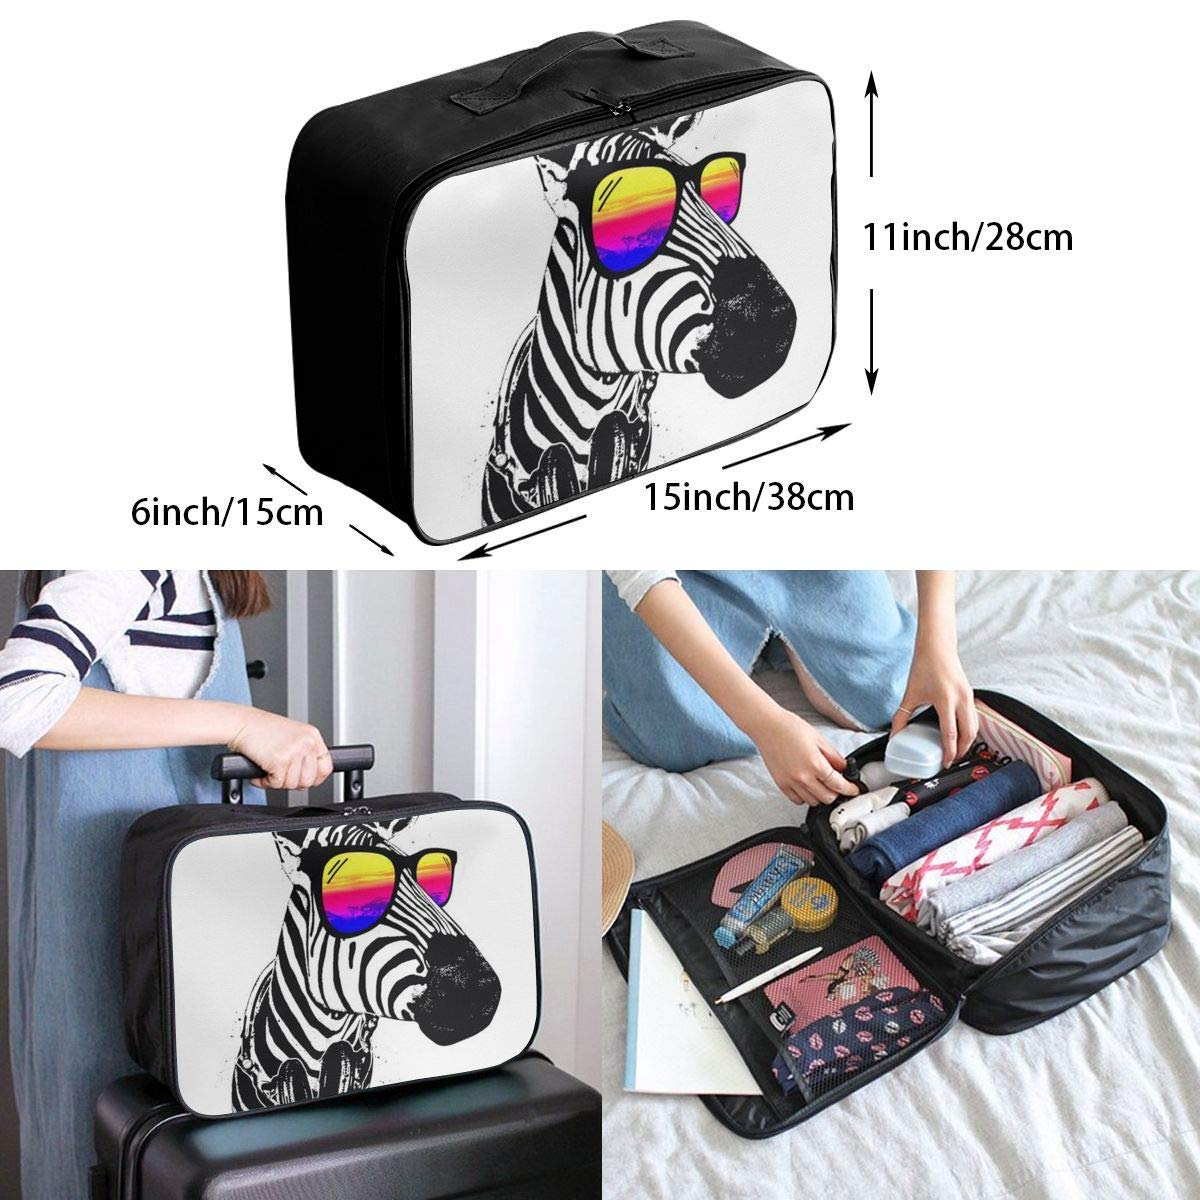 Lightweight Large Capacity Portable Duffel Bag for Men /& Women Cool Zebra With Sunglass Travel Duffel Bag Backpack JTRVW Luggage Bags for Travel